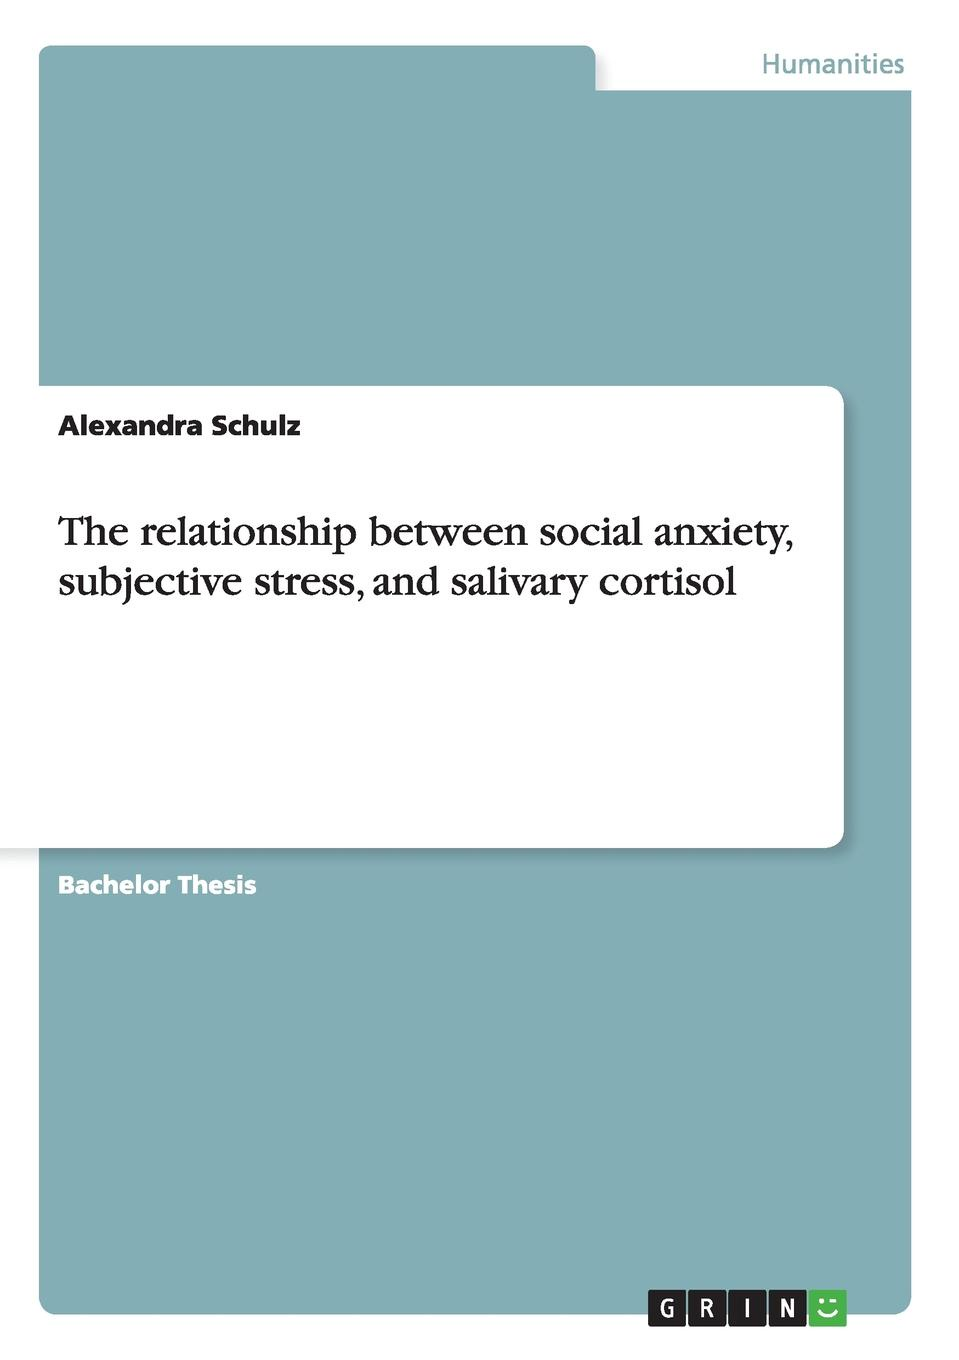 Alexandra Schulz The relationship between social anxiety, subjective stress and salivary cortisol guanglei hong causality in a social world moderation mediation and spill over